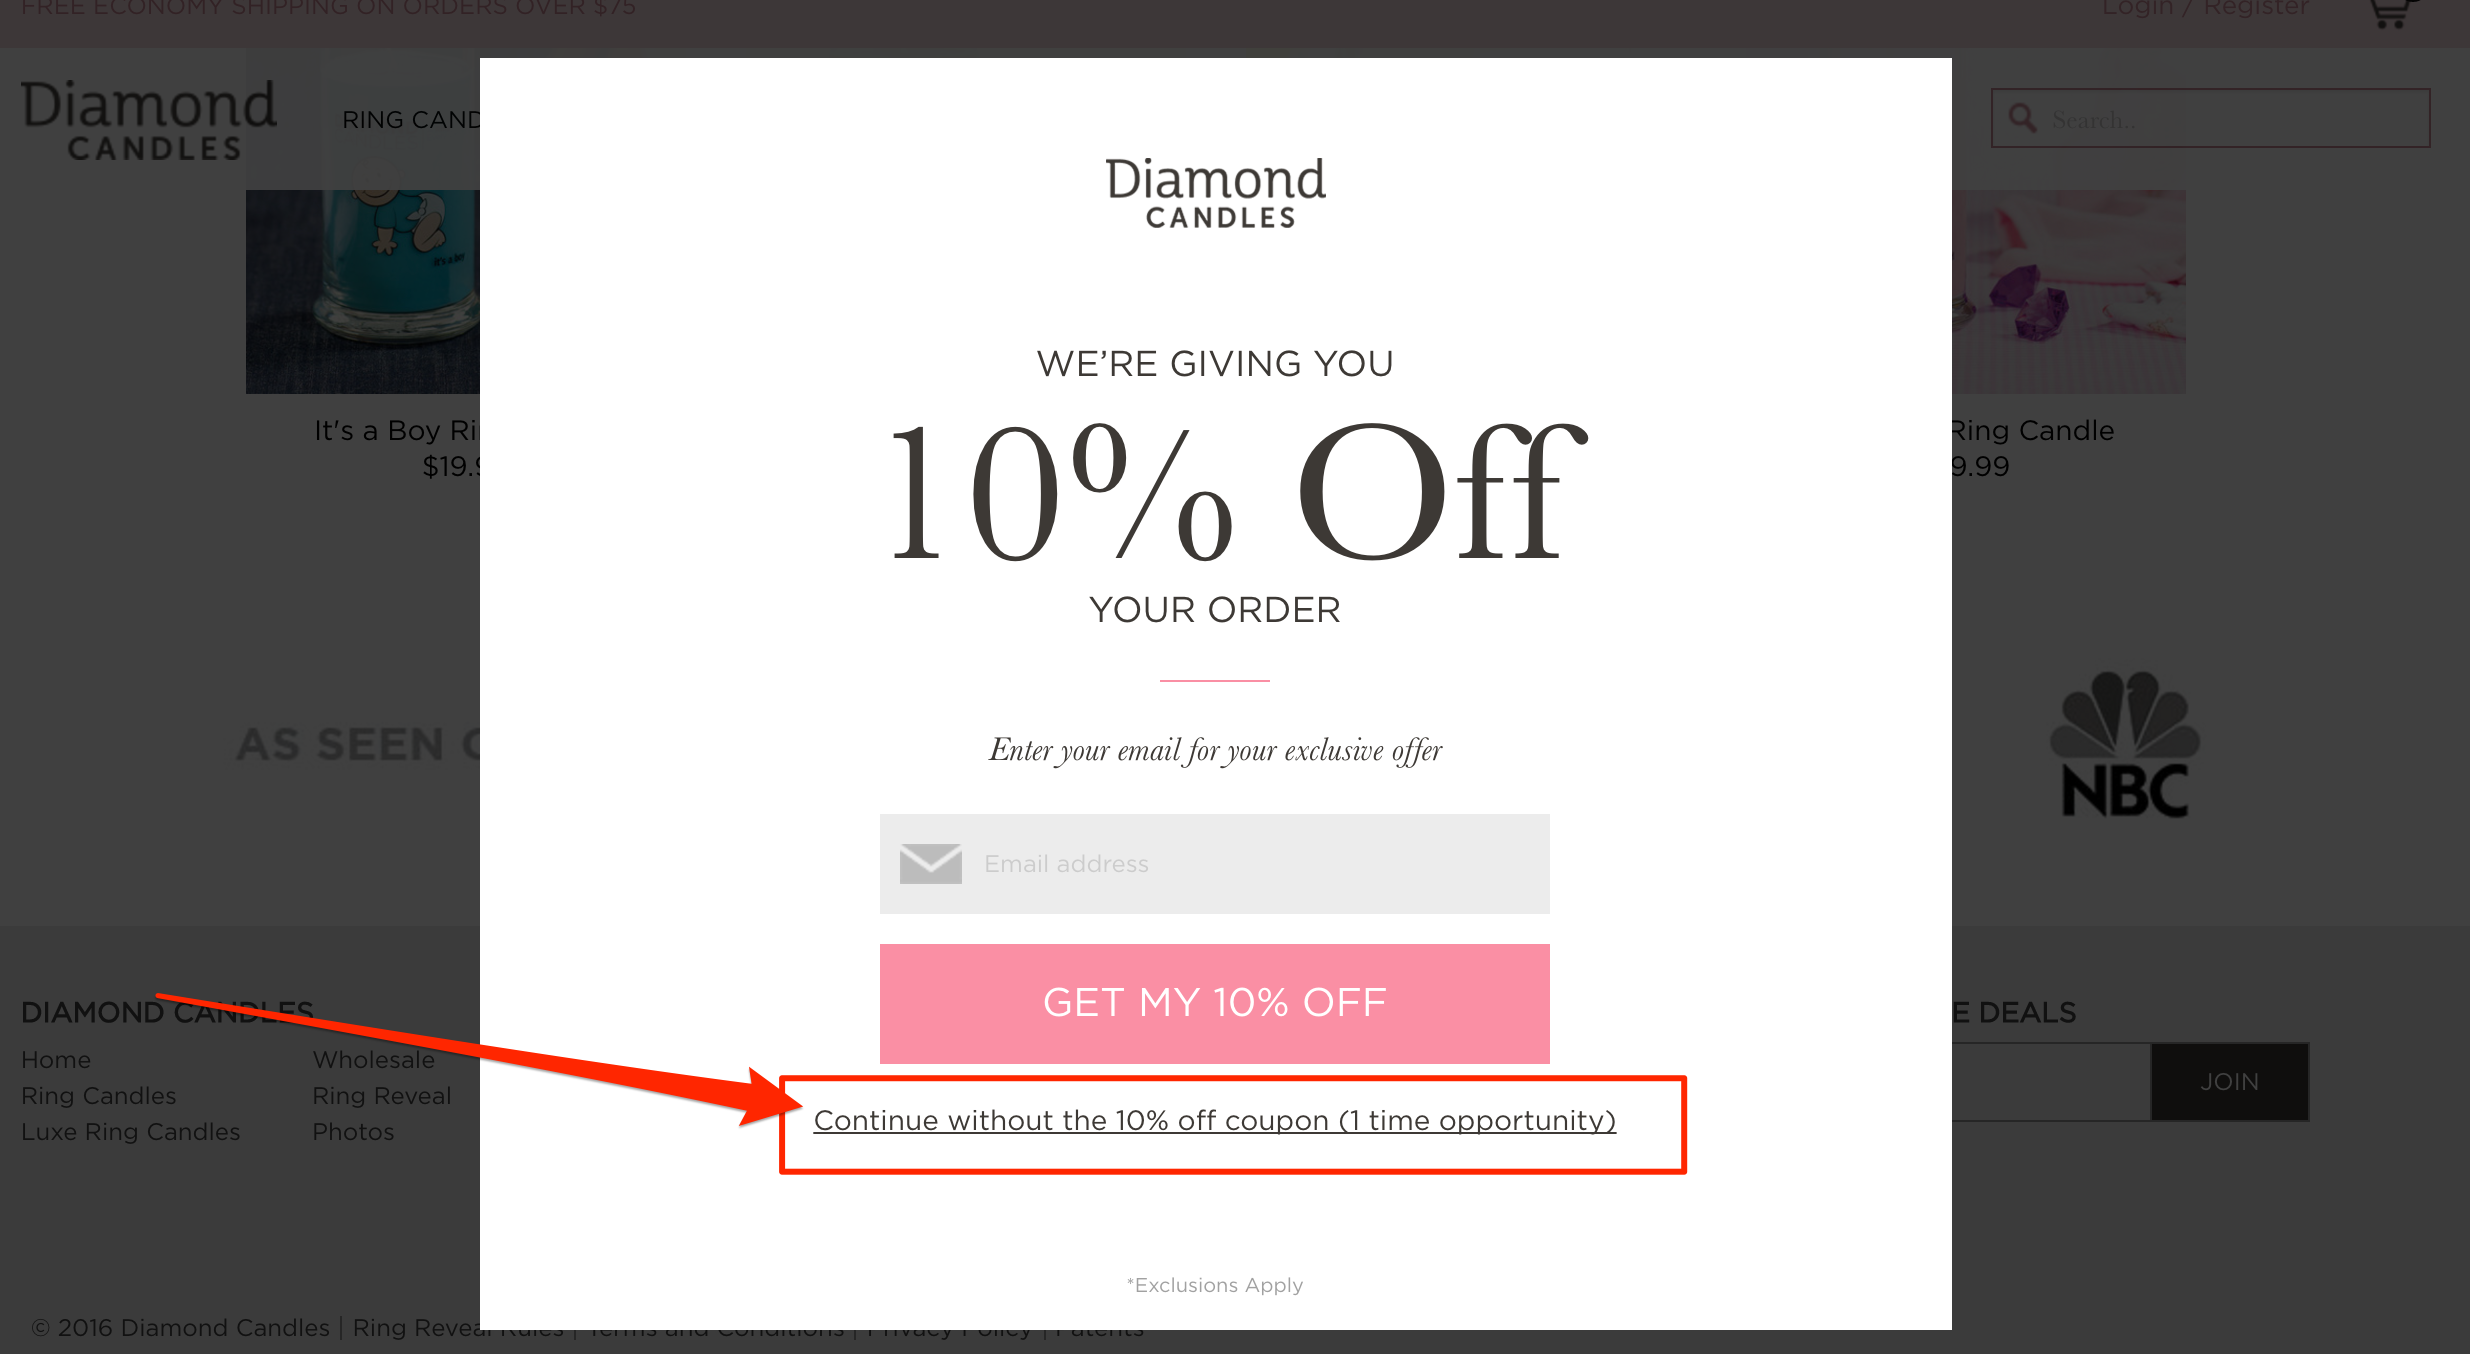 Diamond Candles' popup offering a 10% off coupon to new subscribers